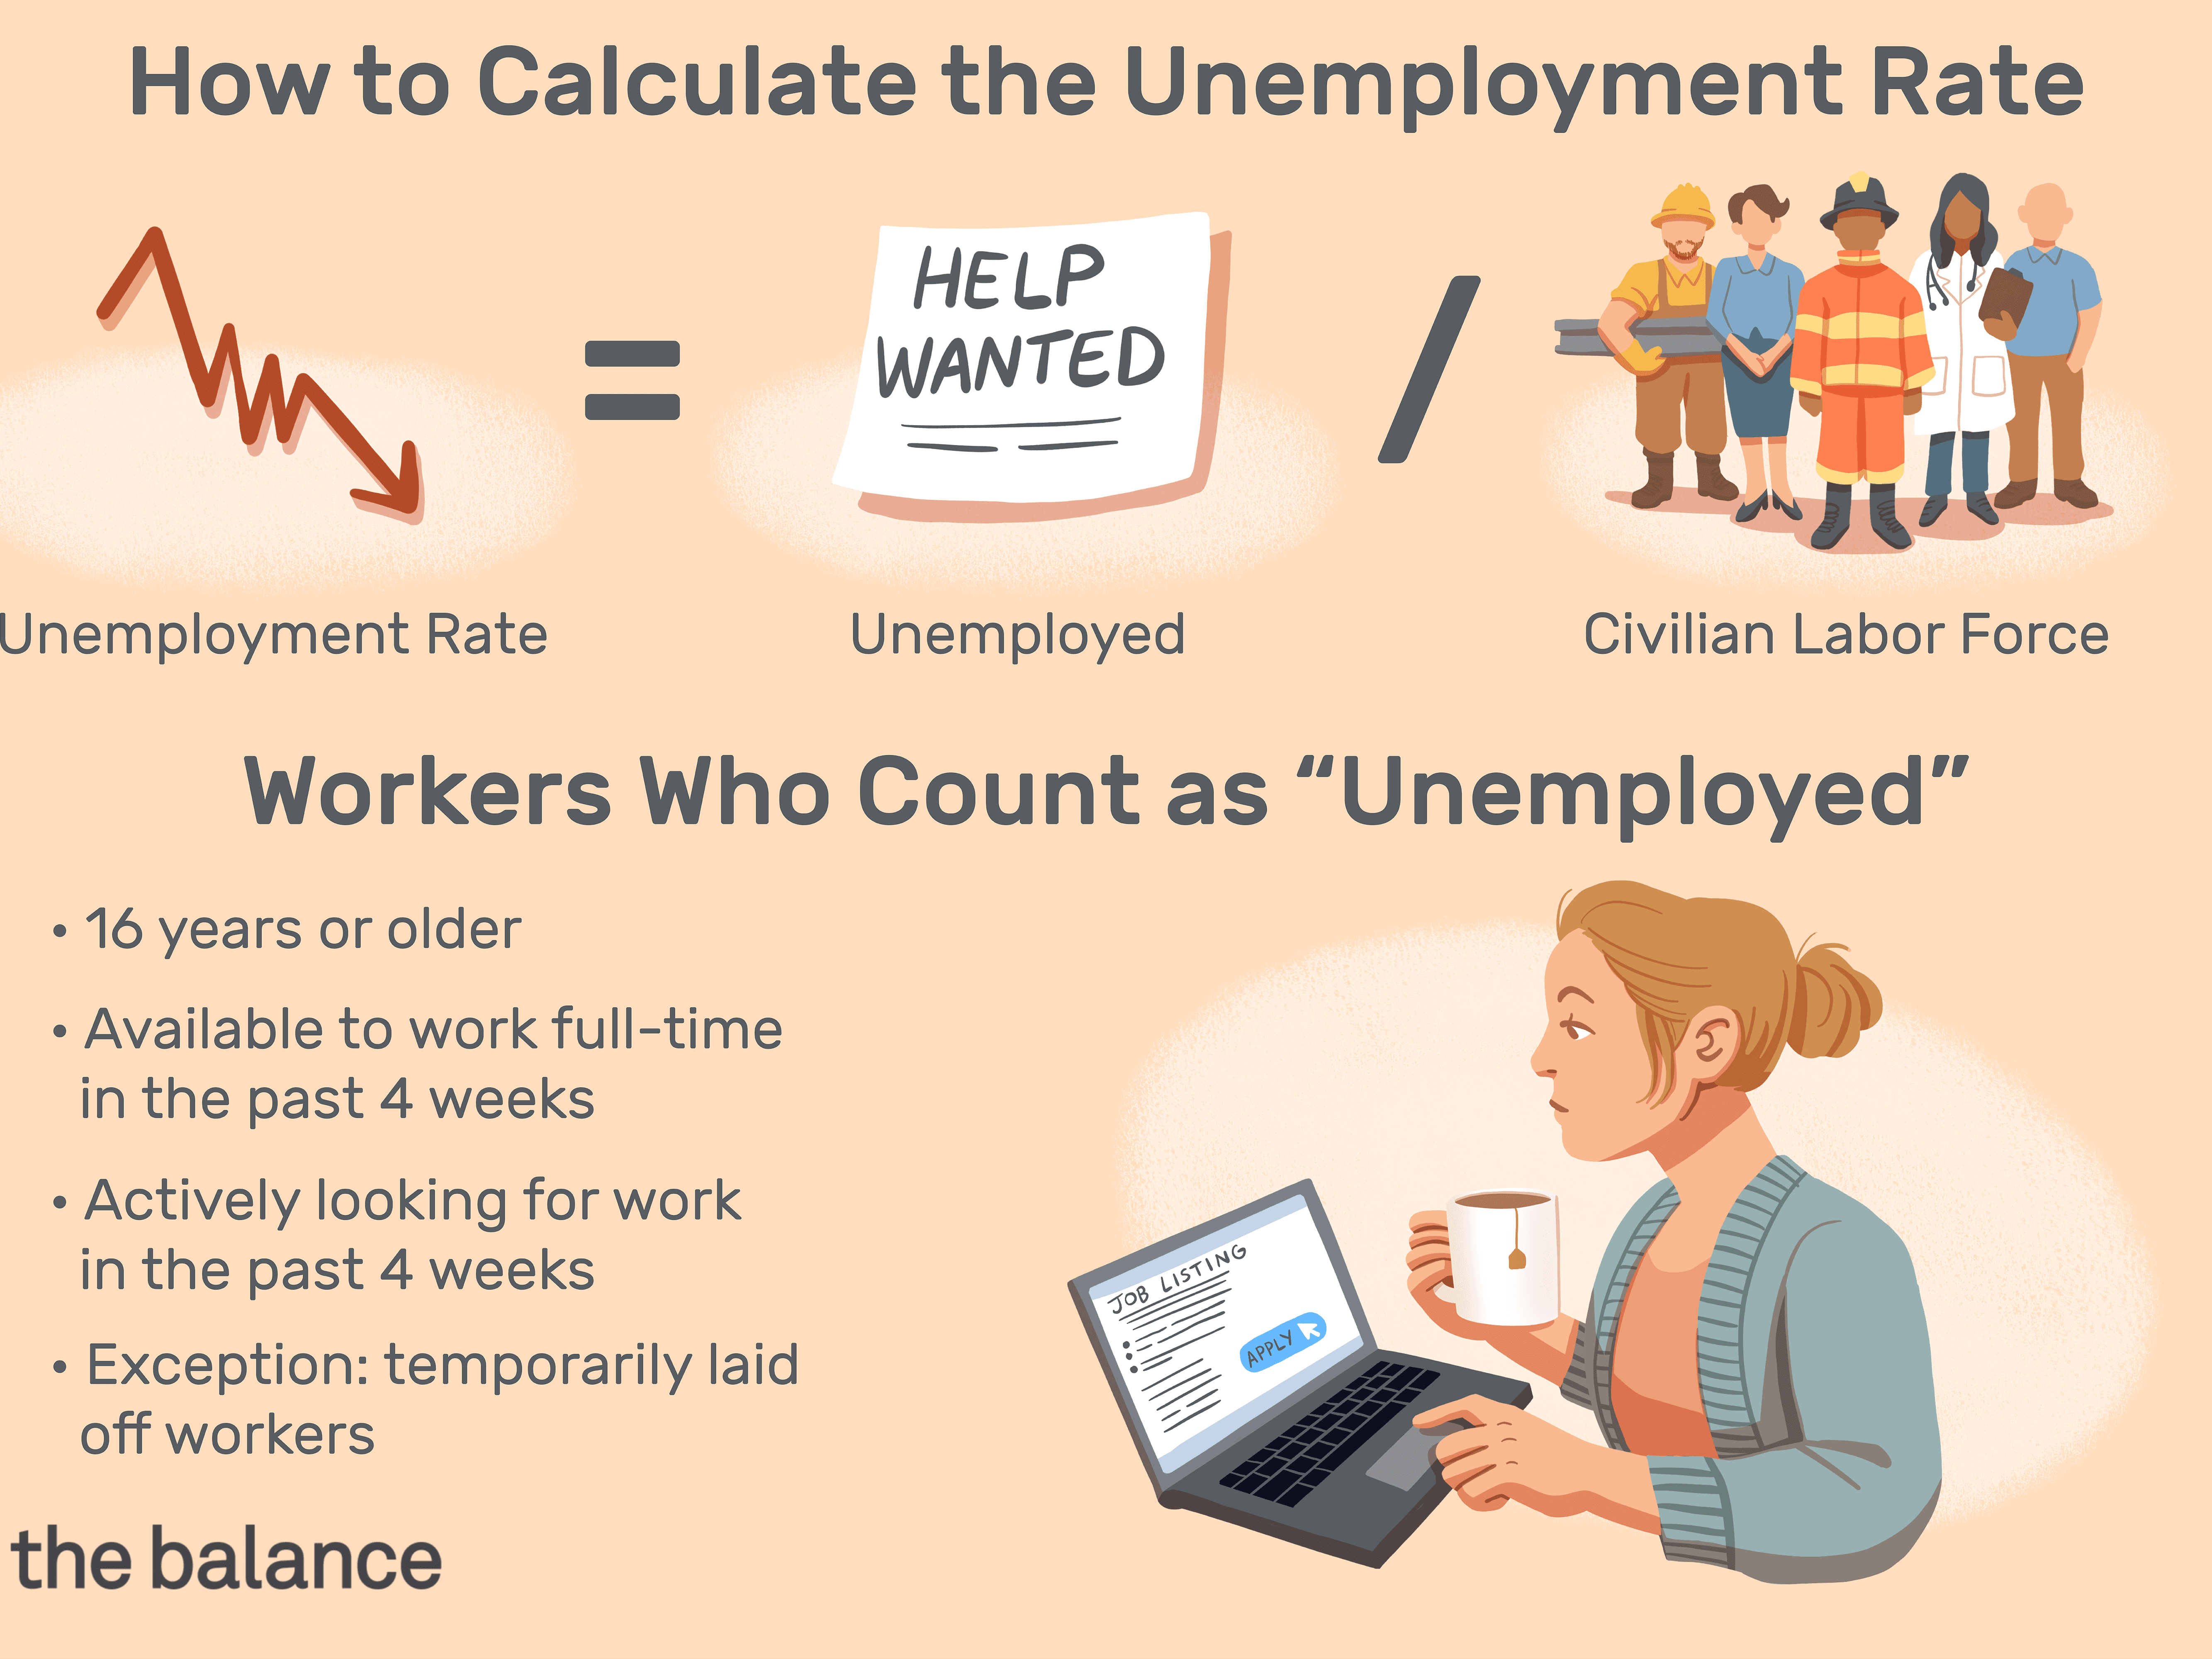 How To Measure The Unemployment Rate